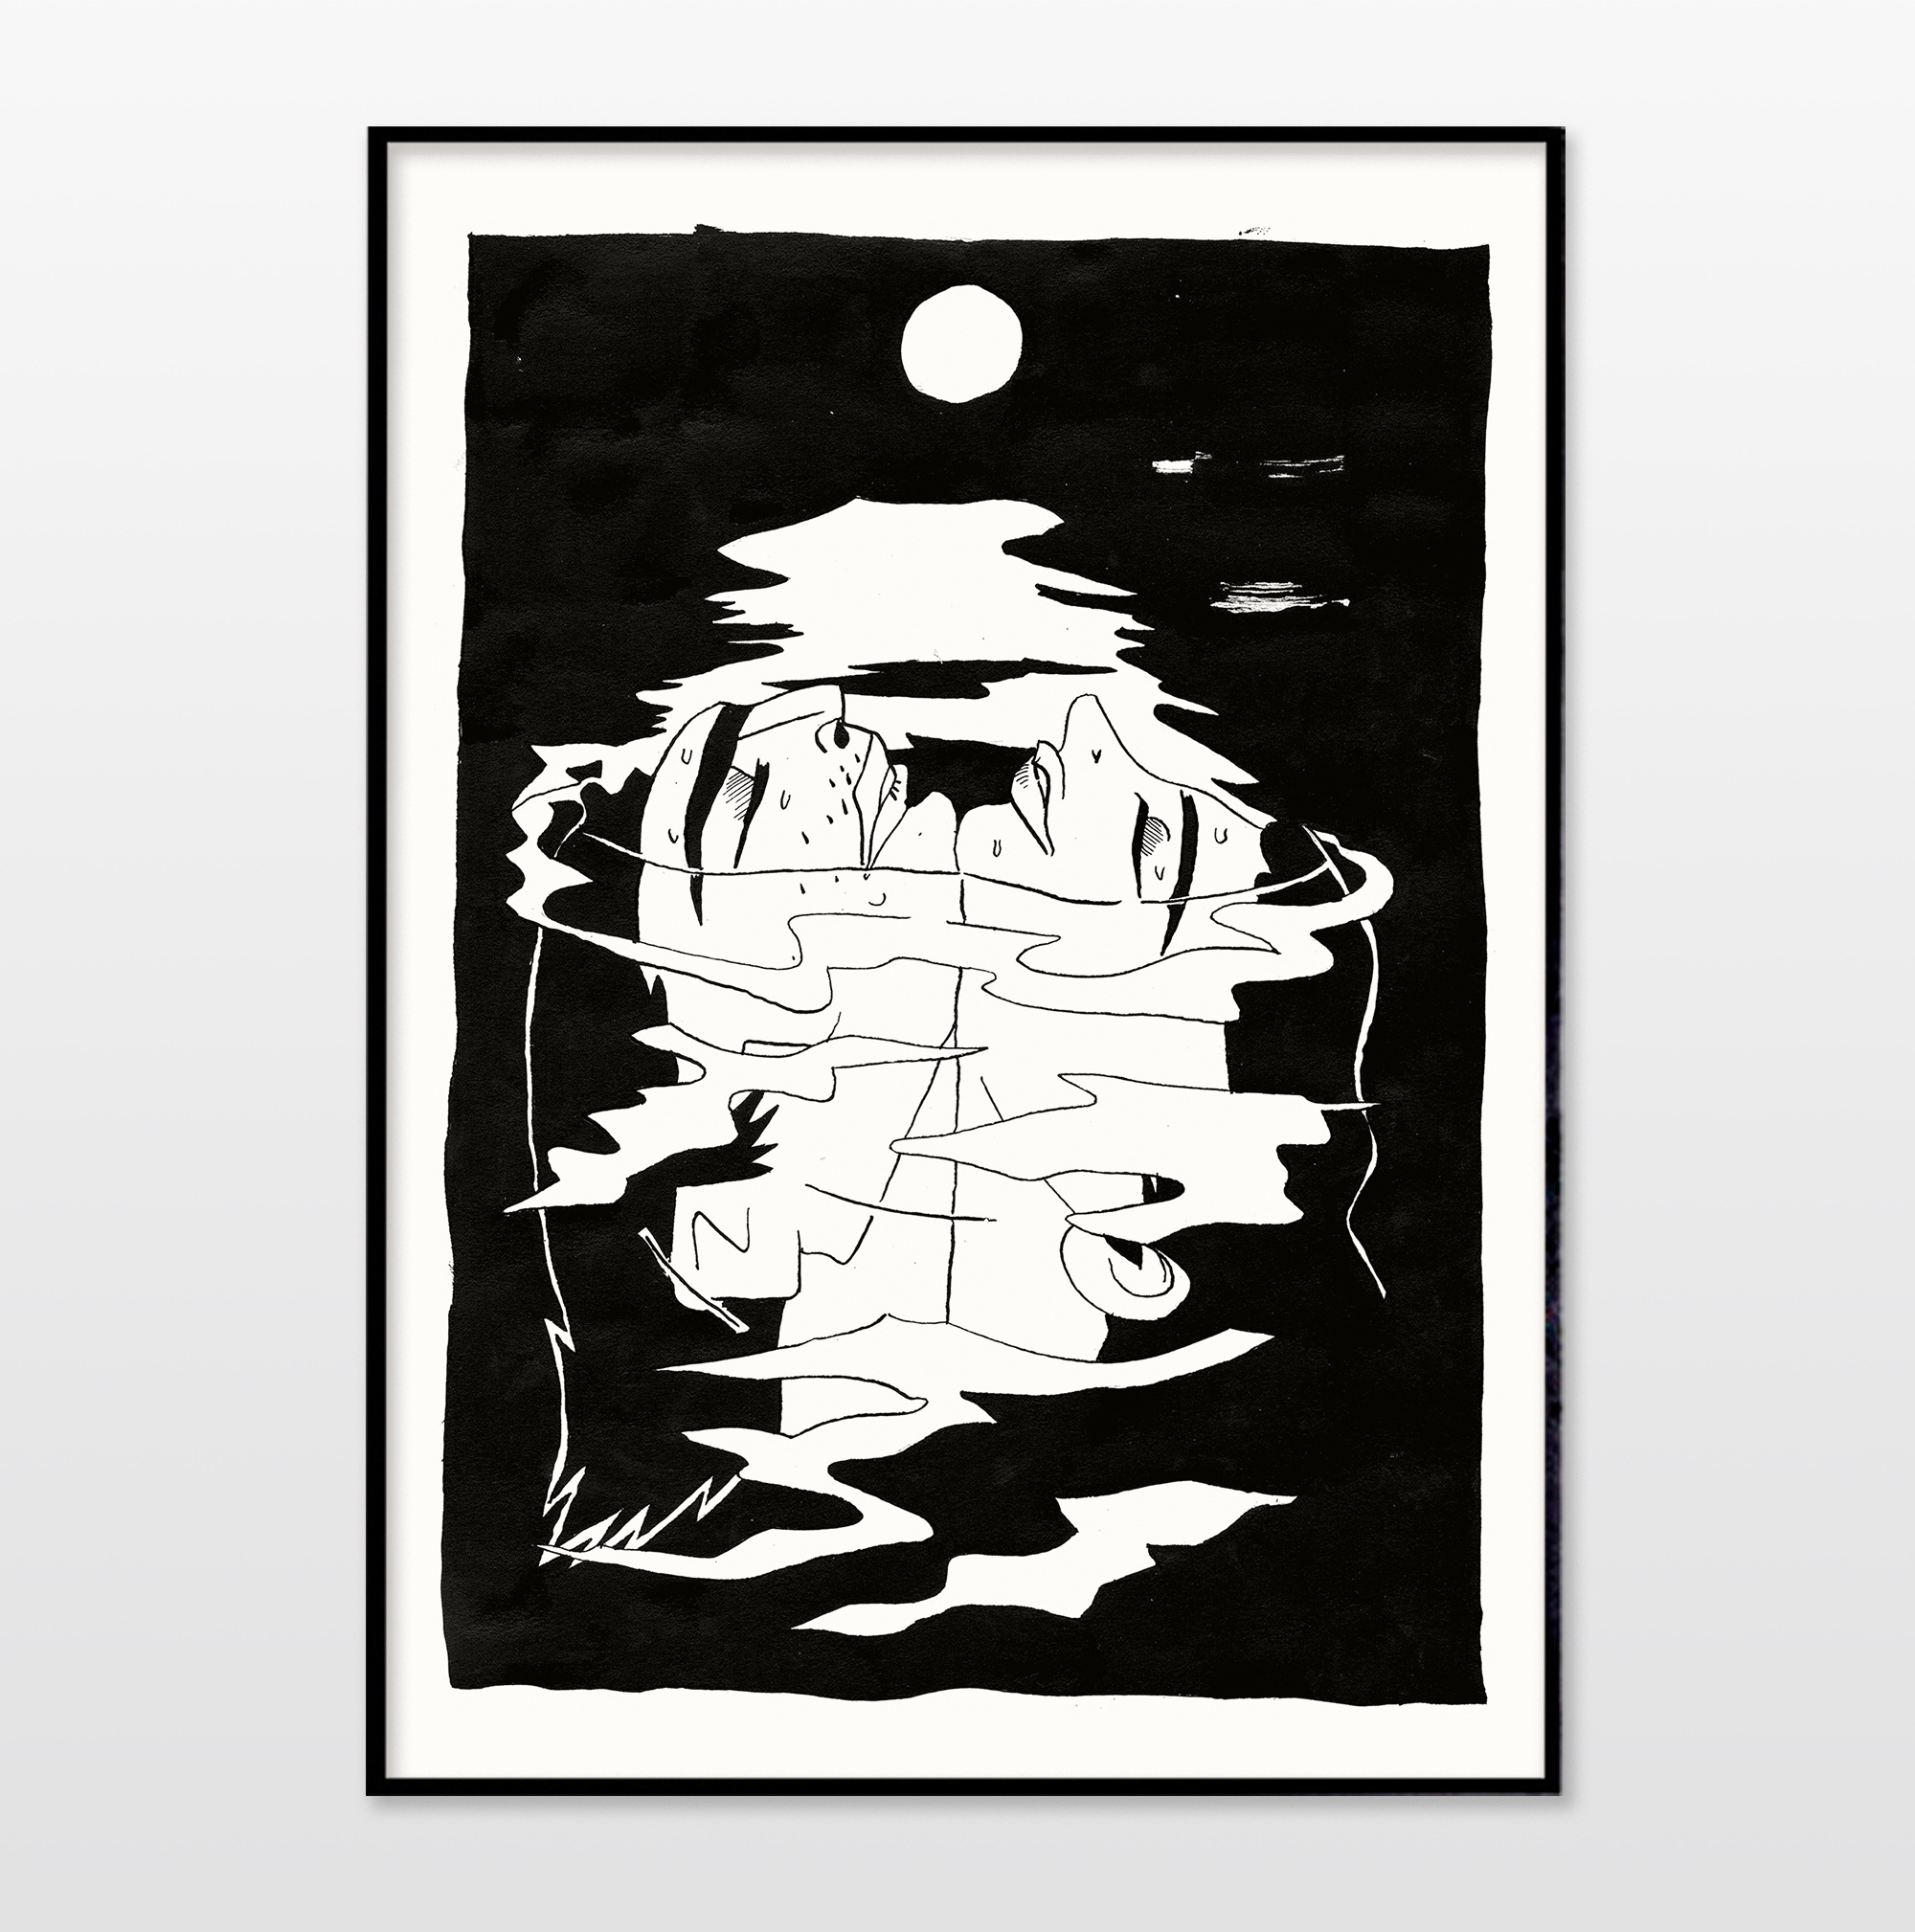 posters-prints, giclee-print, expressive, figurative, illustrative, portraiture, bodies, nature, oceans, people, black, white, ink, paper, beautiful, black-and-white, contemporary-art, danish, decorative, design, faces, interior, interior-design, love, modern, modern-art, nordic, posters, scandinavien, water, Buy original high quality art. Paintings, drawings, limited edition prints & posters by talented artists.